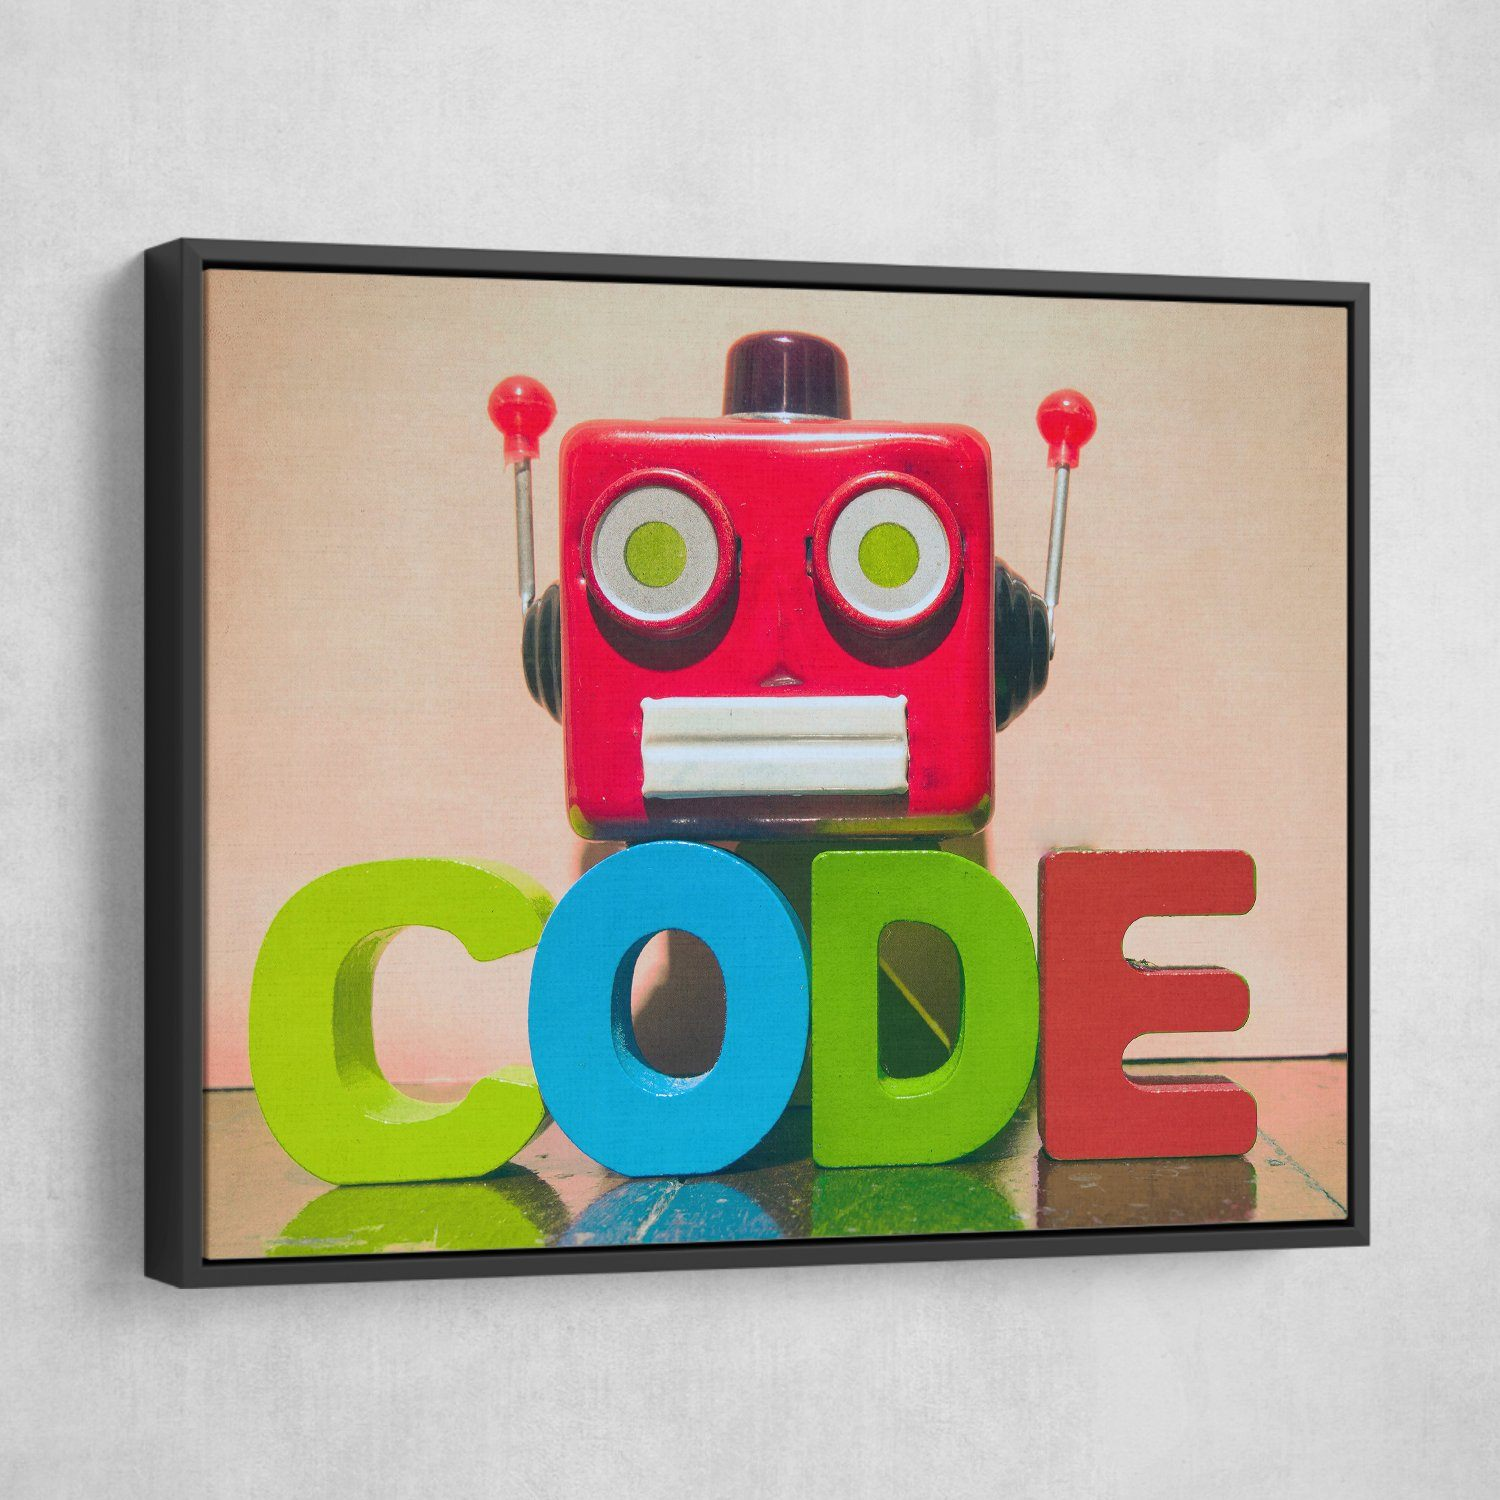 It's a Code wall art black floating frame